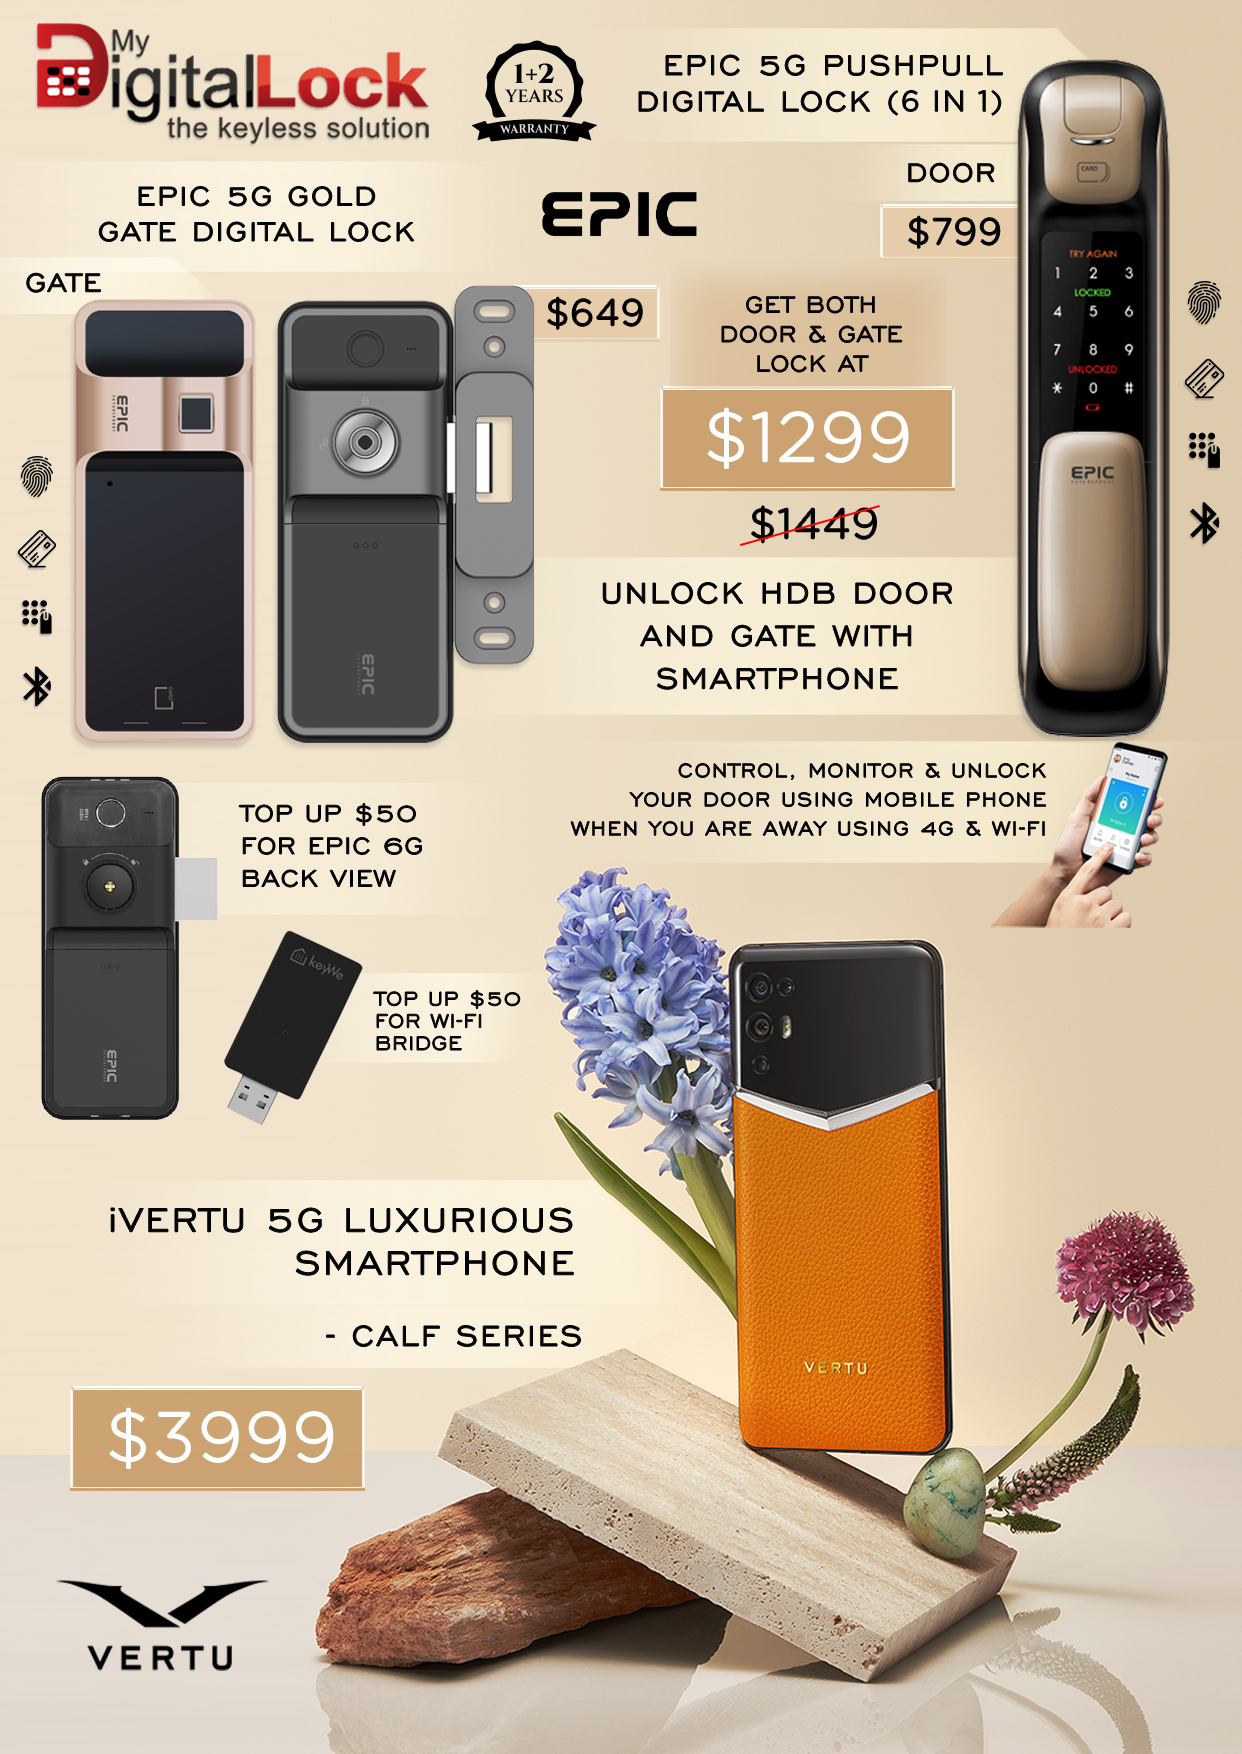 Number-1-epic-Best-Selling-Digitallock-and-iVertu-Smartphone-Promotions_2021